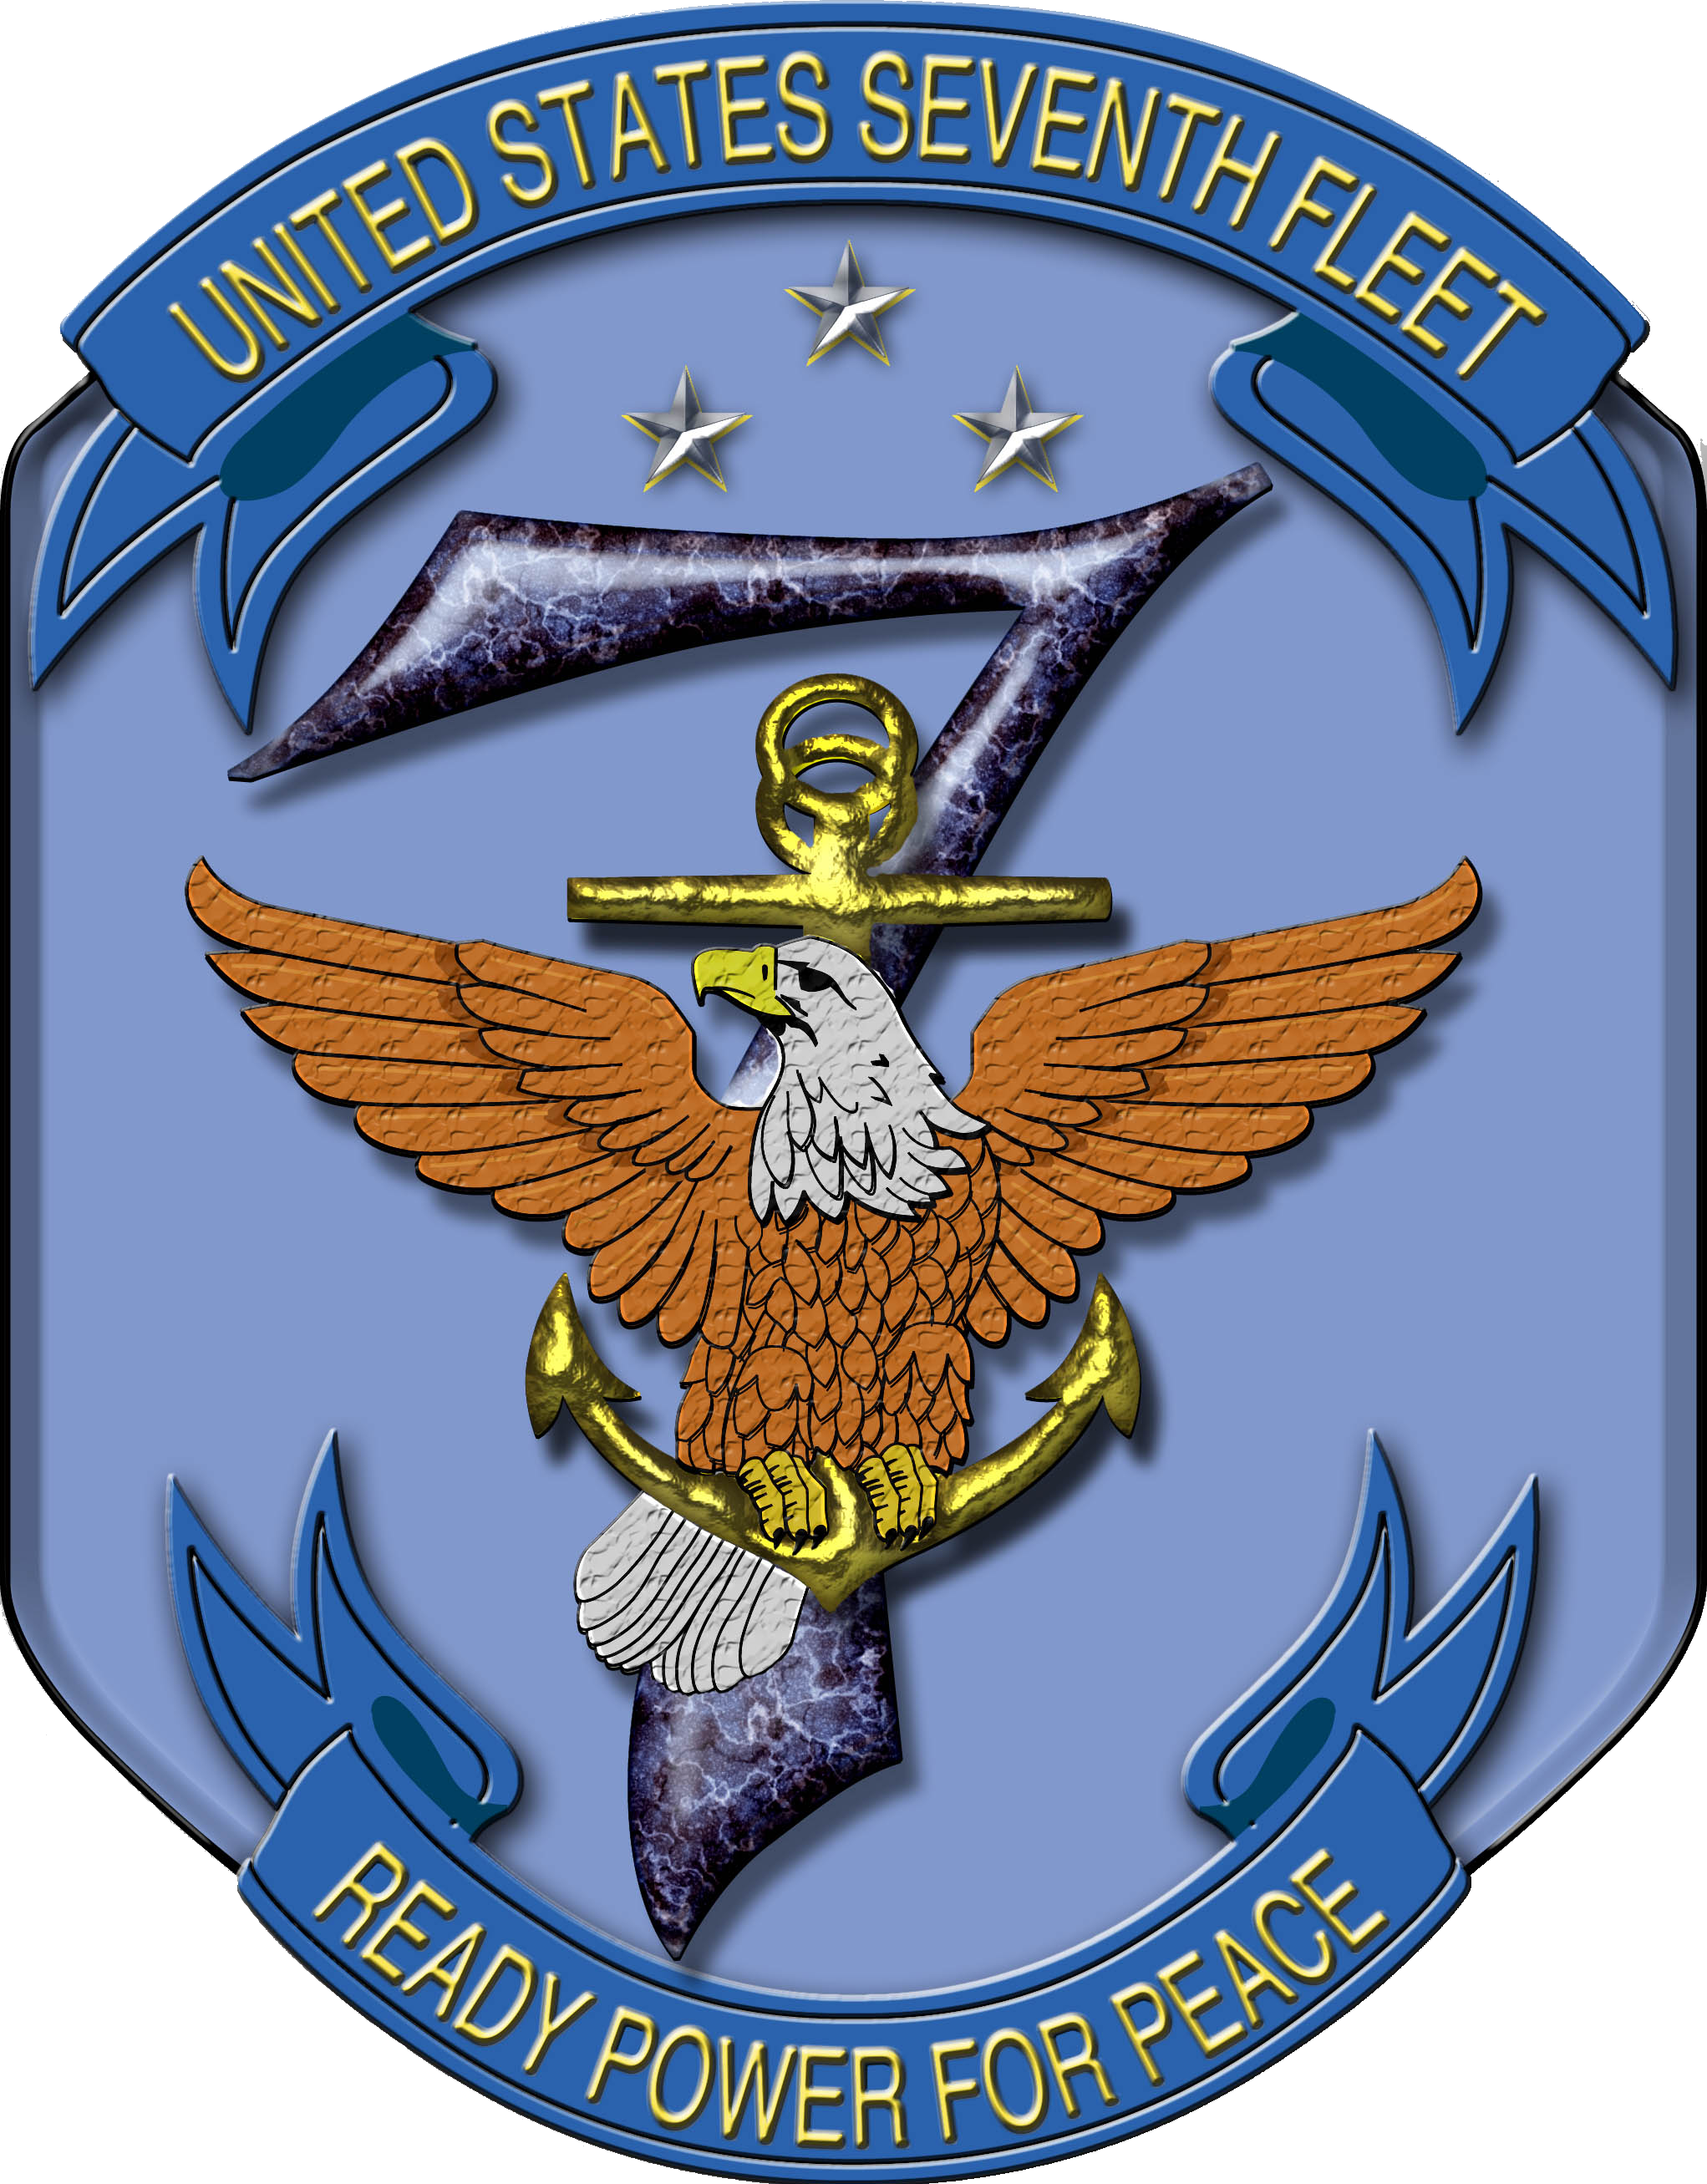 File:US Seventh Fleet.png - Wikipedia, the free encyclopedia